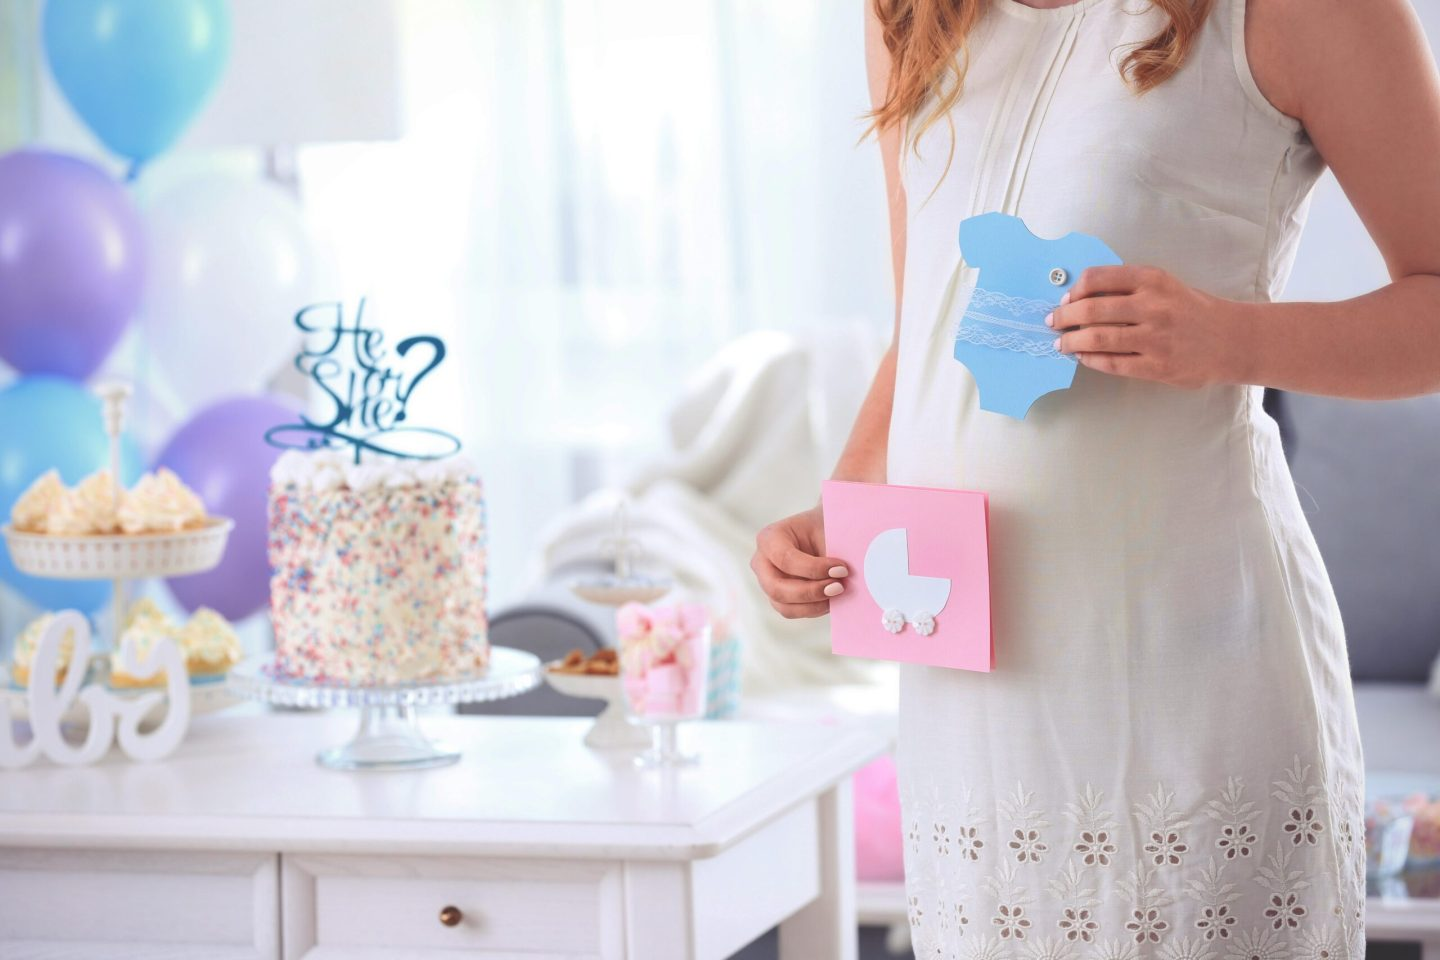 unique gender reveal party ideas featured image